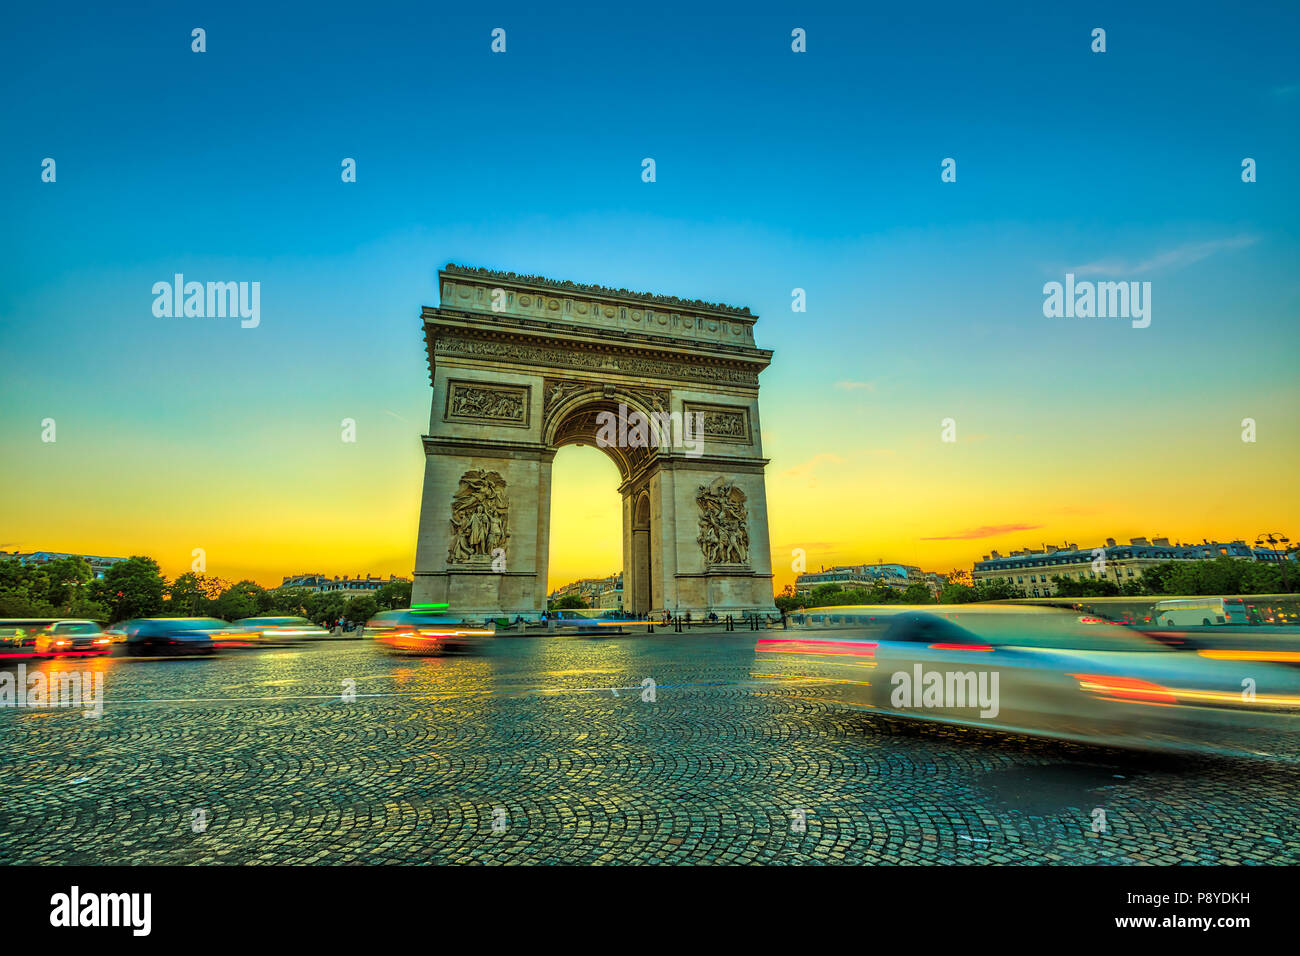 Arch of triumph. Arc de Triomphe at the western end of the Champs Elysees at the center of Place Charles de Gaulle in Paris at sunset with car traffic. Paris capital of France in Europe. - Stock Image